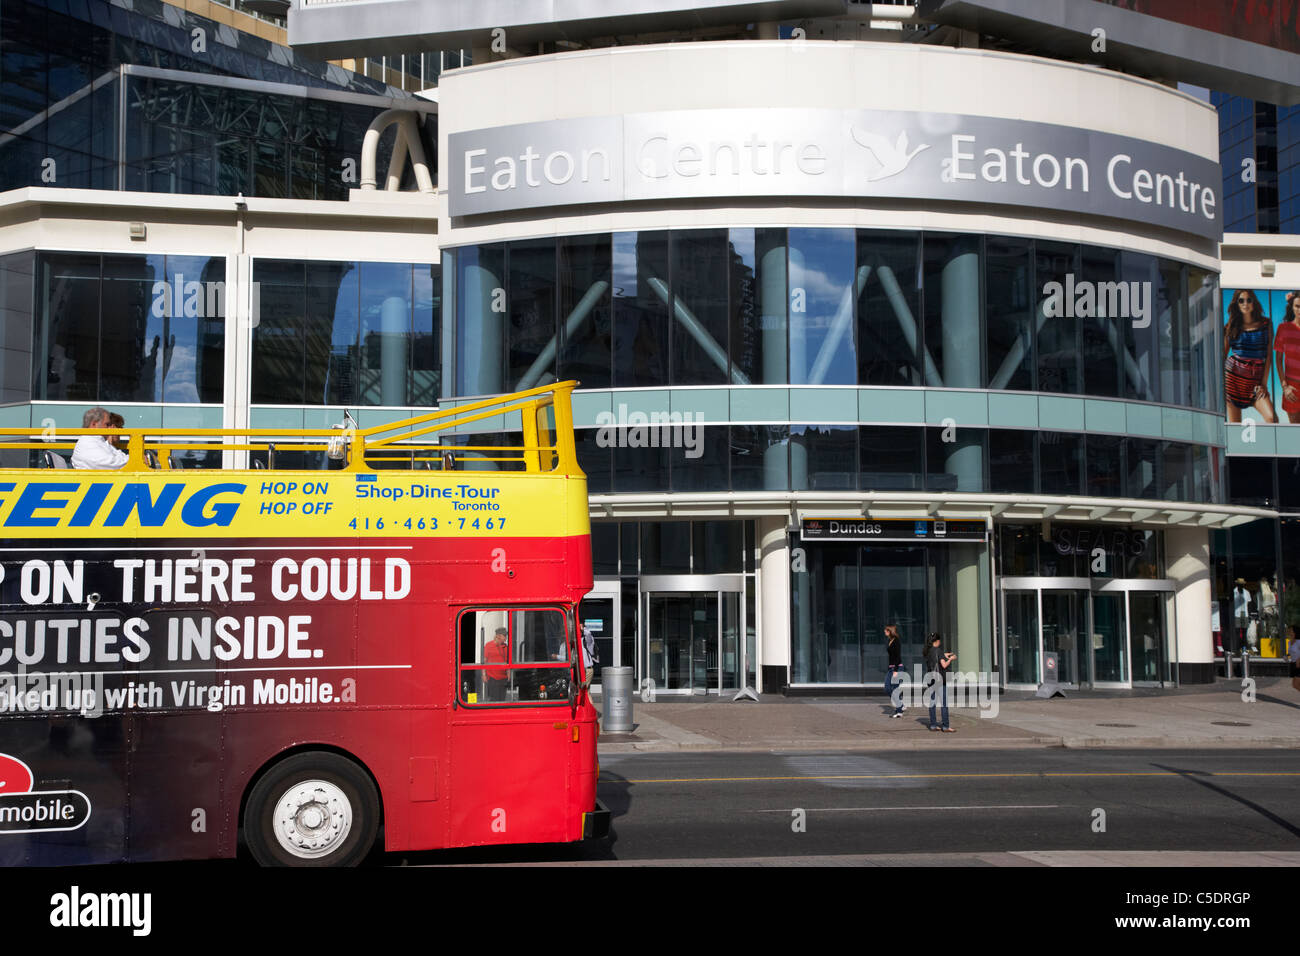 shop dine tour city sightseeing bus outside eaton centre in yonge dundas square toronto ontario canada - Stock Image